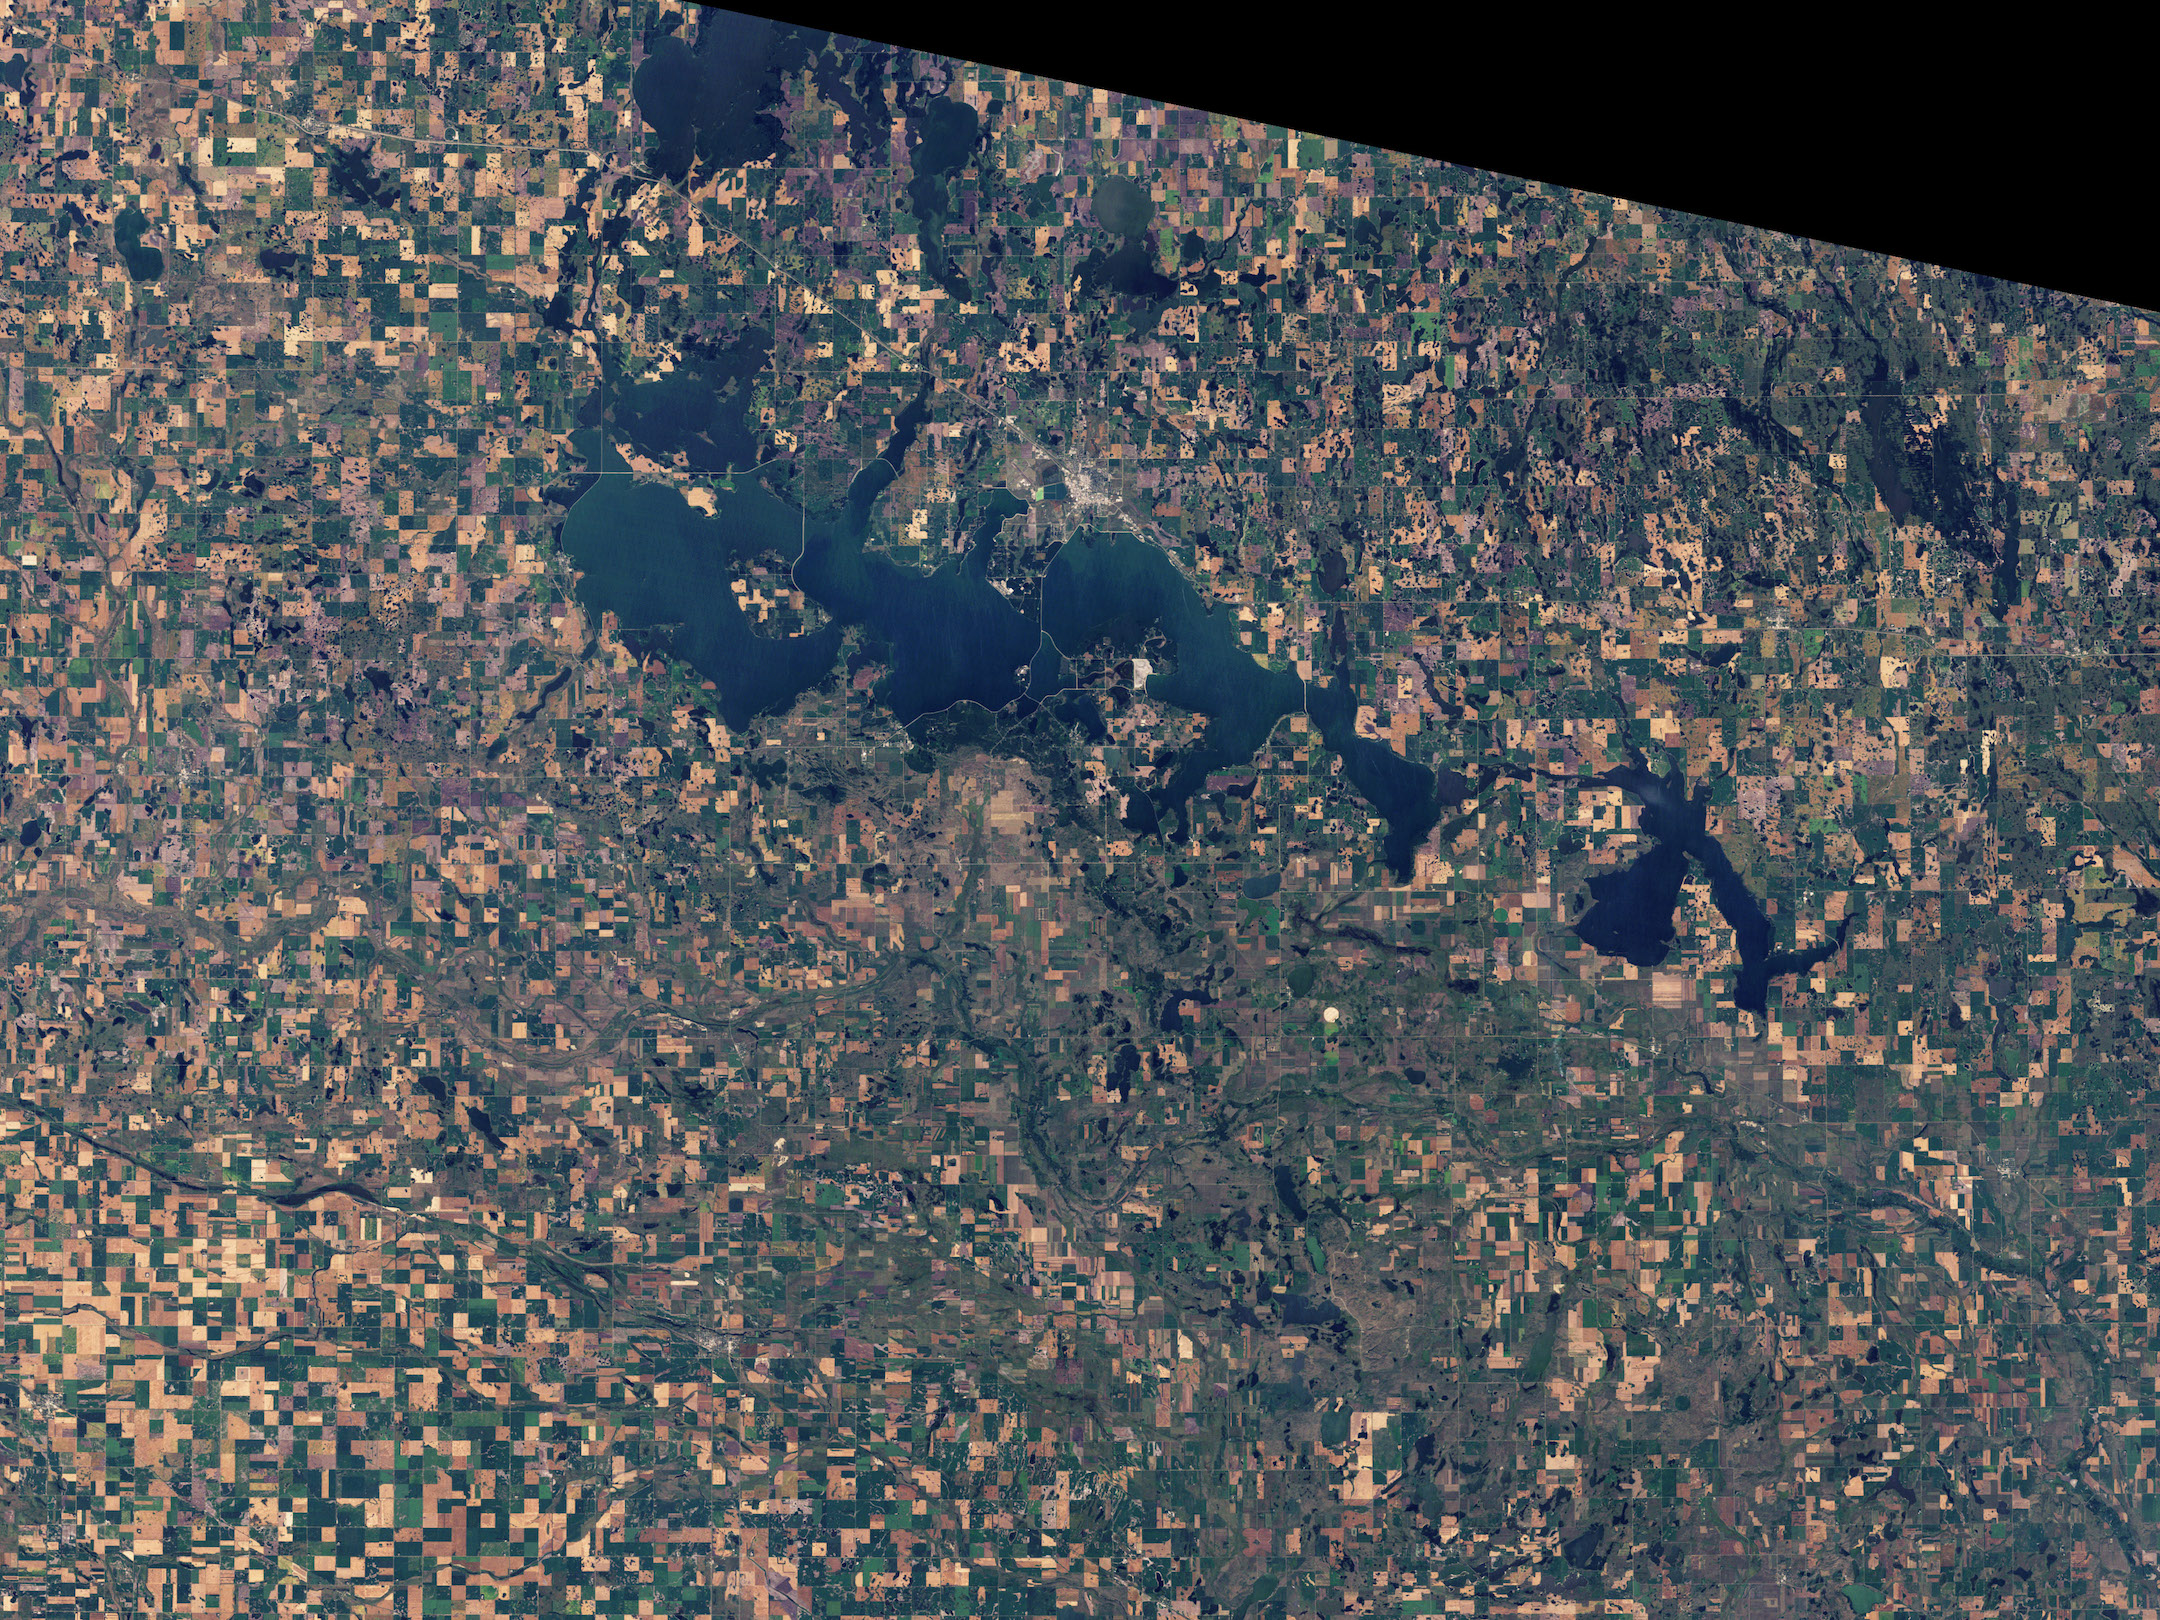 Today's Image of the Day comes thanks to the NASA Earth Observatory and features a look at Devils Lake, North Dakota from space.